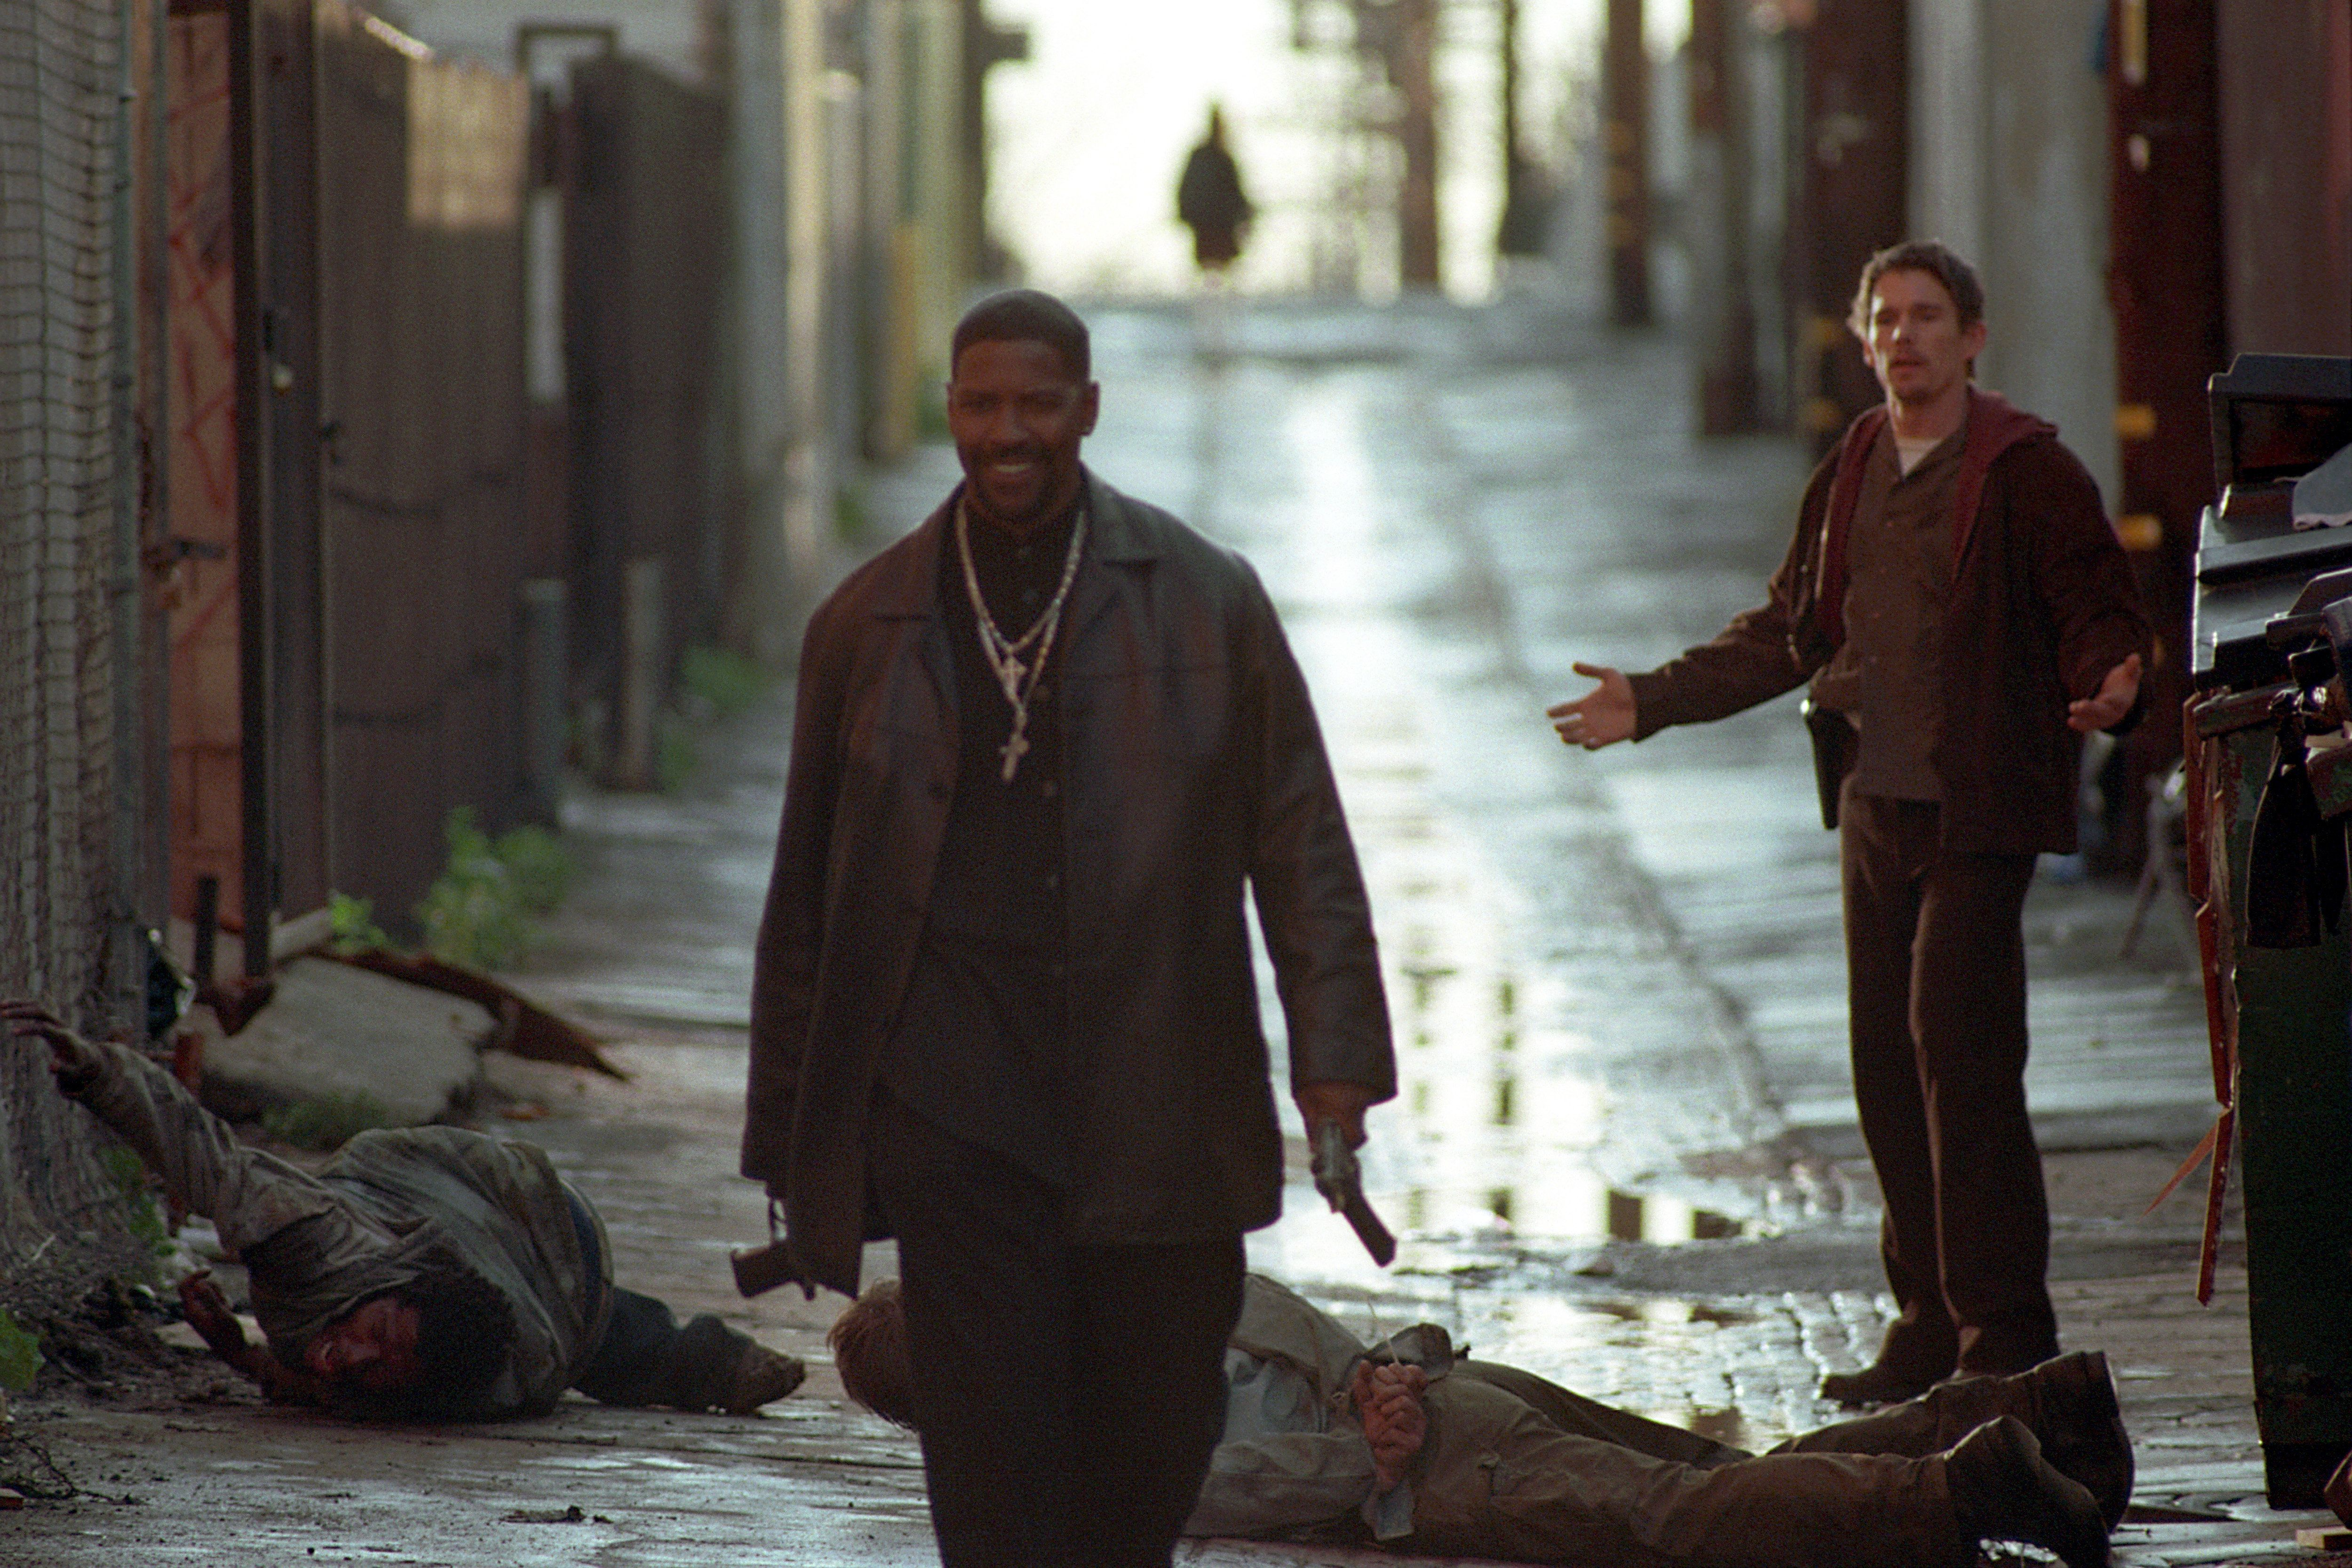 UNSPECIFIED - AUGUST 30:  Full shot in alley of smiling Denzel Washington holding gun/pistol and walking away from Ethan Hawke as Jack Hoyt; Garland Witt as Crackhead _1 (left) and Will Stewart as Crackhead _2 laying on ground.  (Photo by Warner Bros./Getty Images)